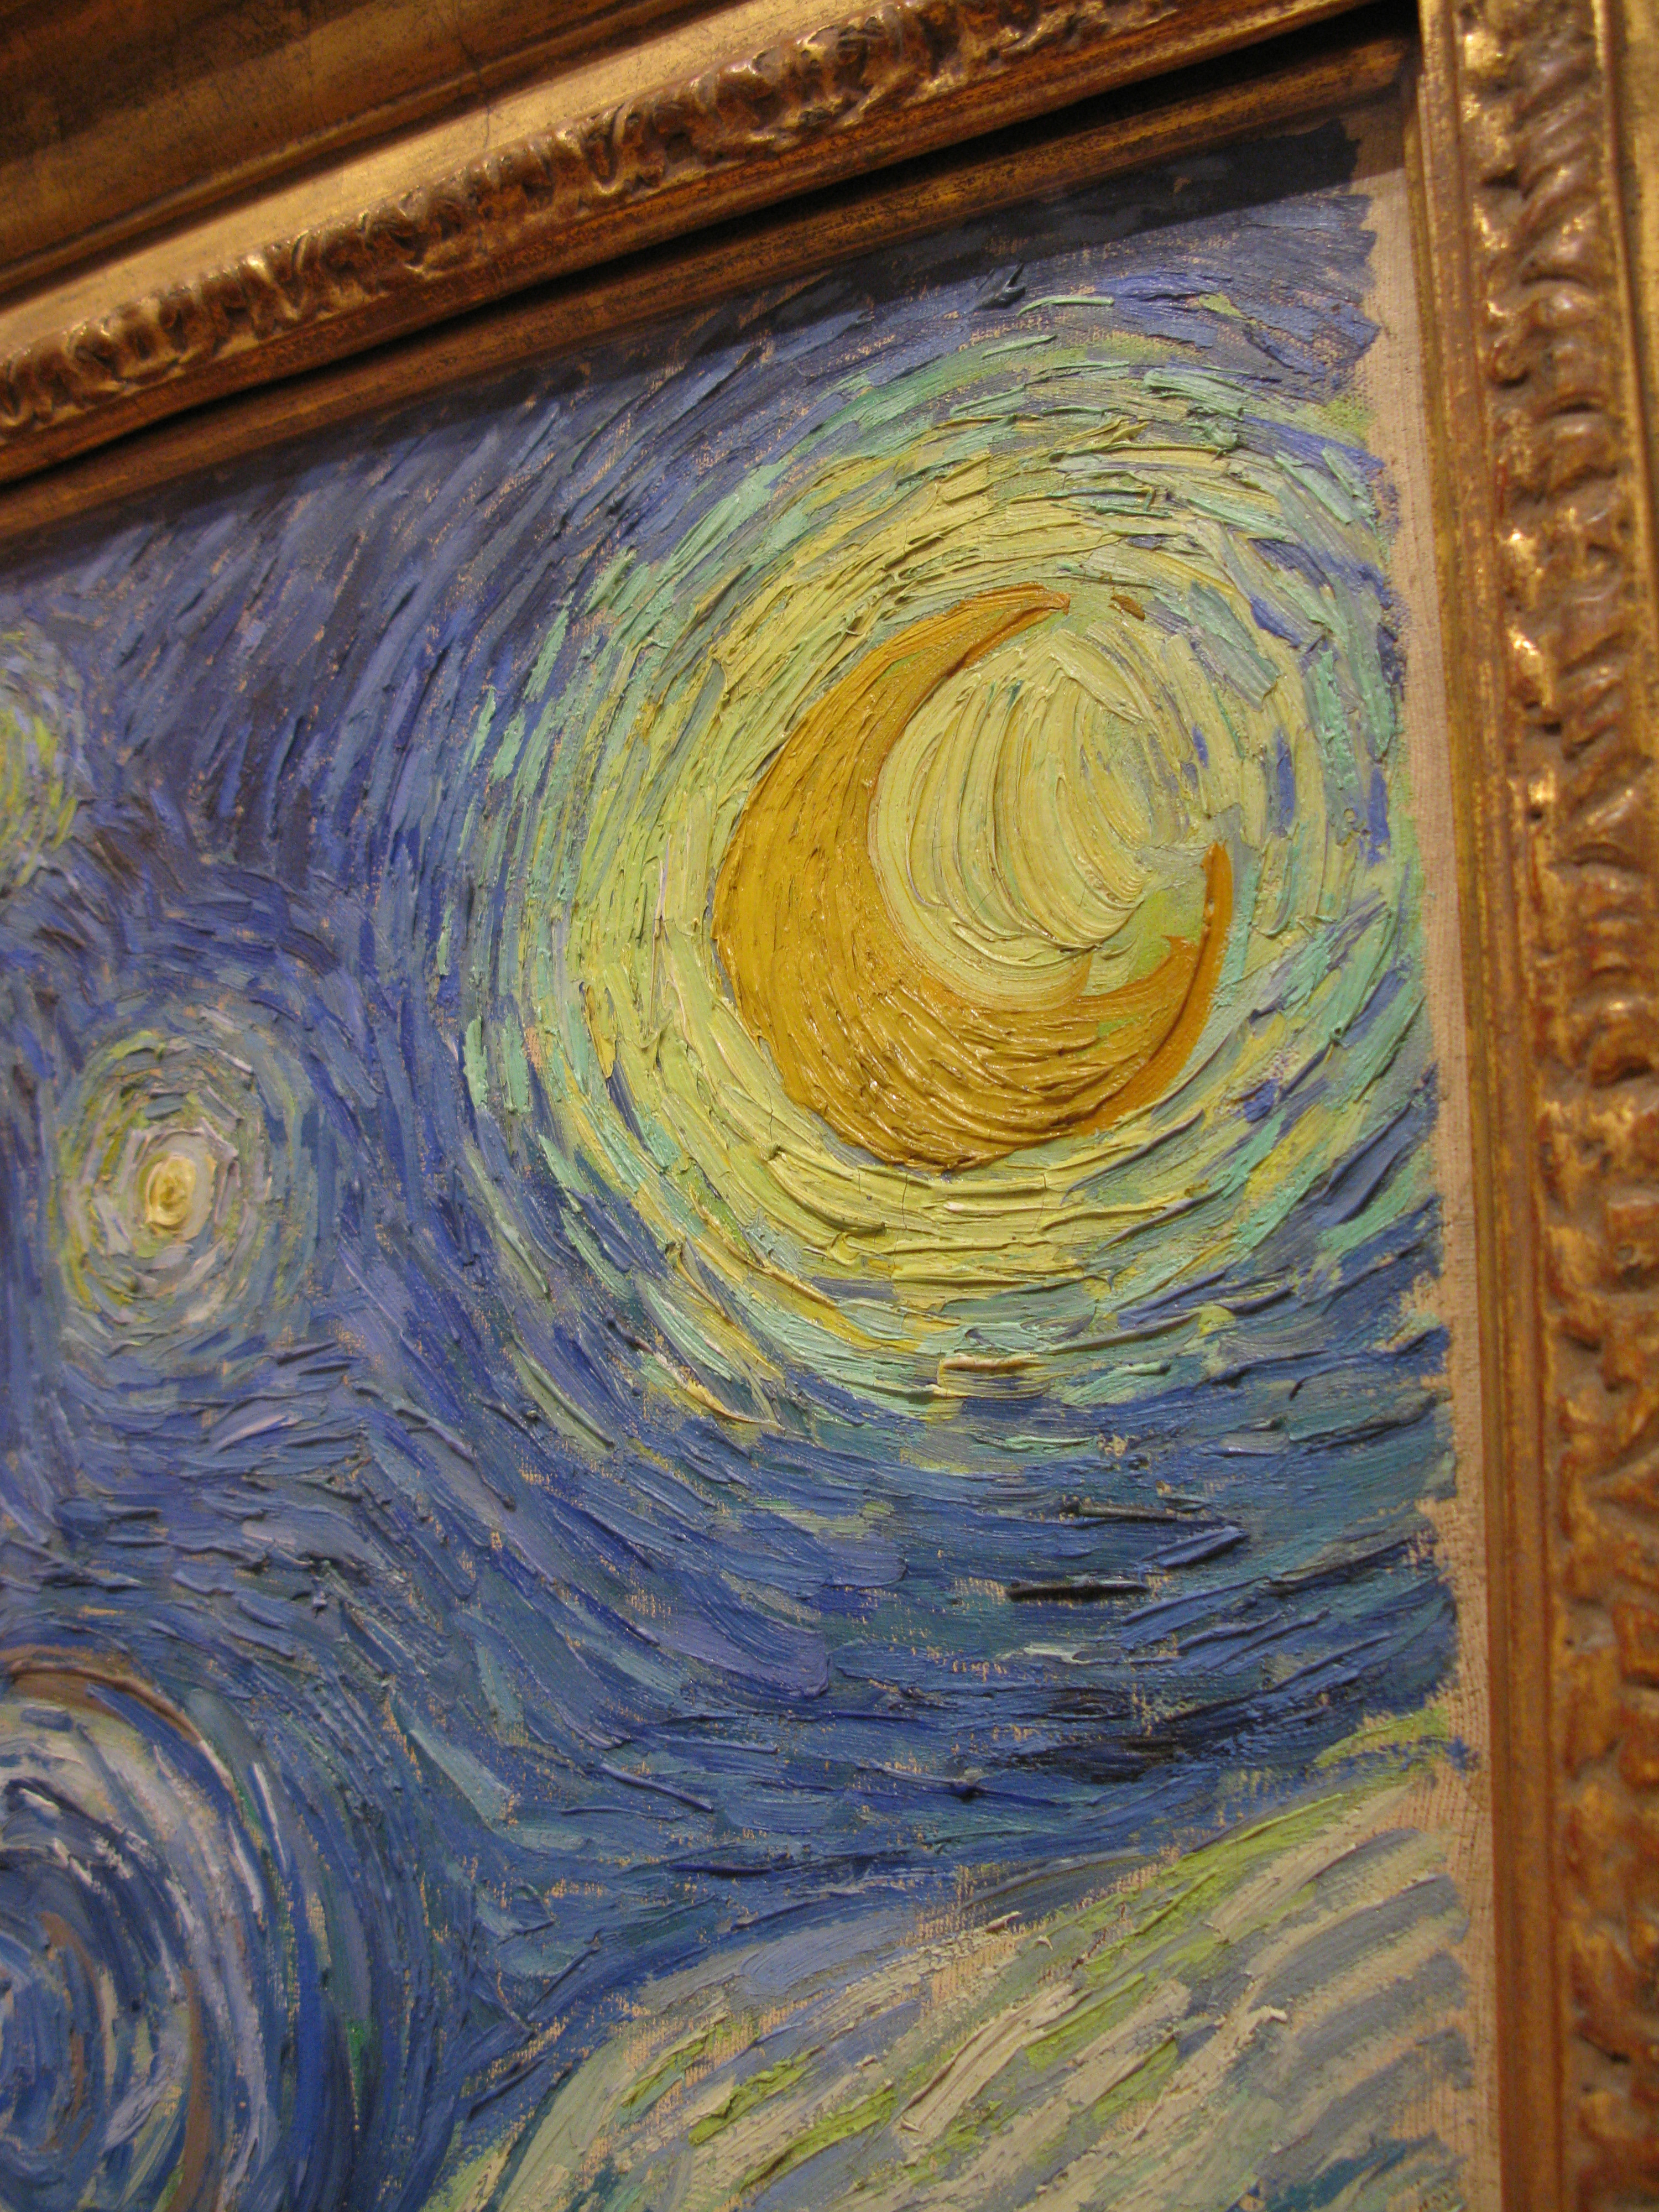 van gogh s starry night and salvador Van gogh vs salvador dali the focus of the paper is to make a comparison and contrasts between van gogh's 'starry night' and salvador dali's 'persistence of time.